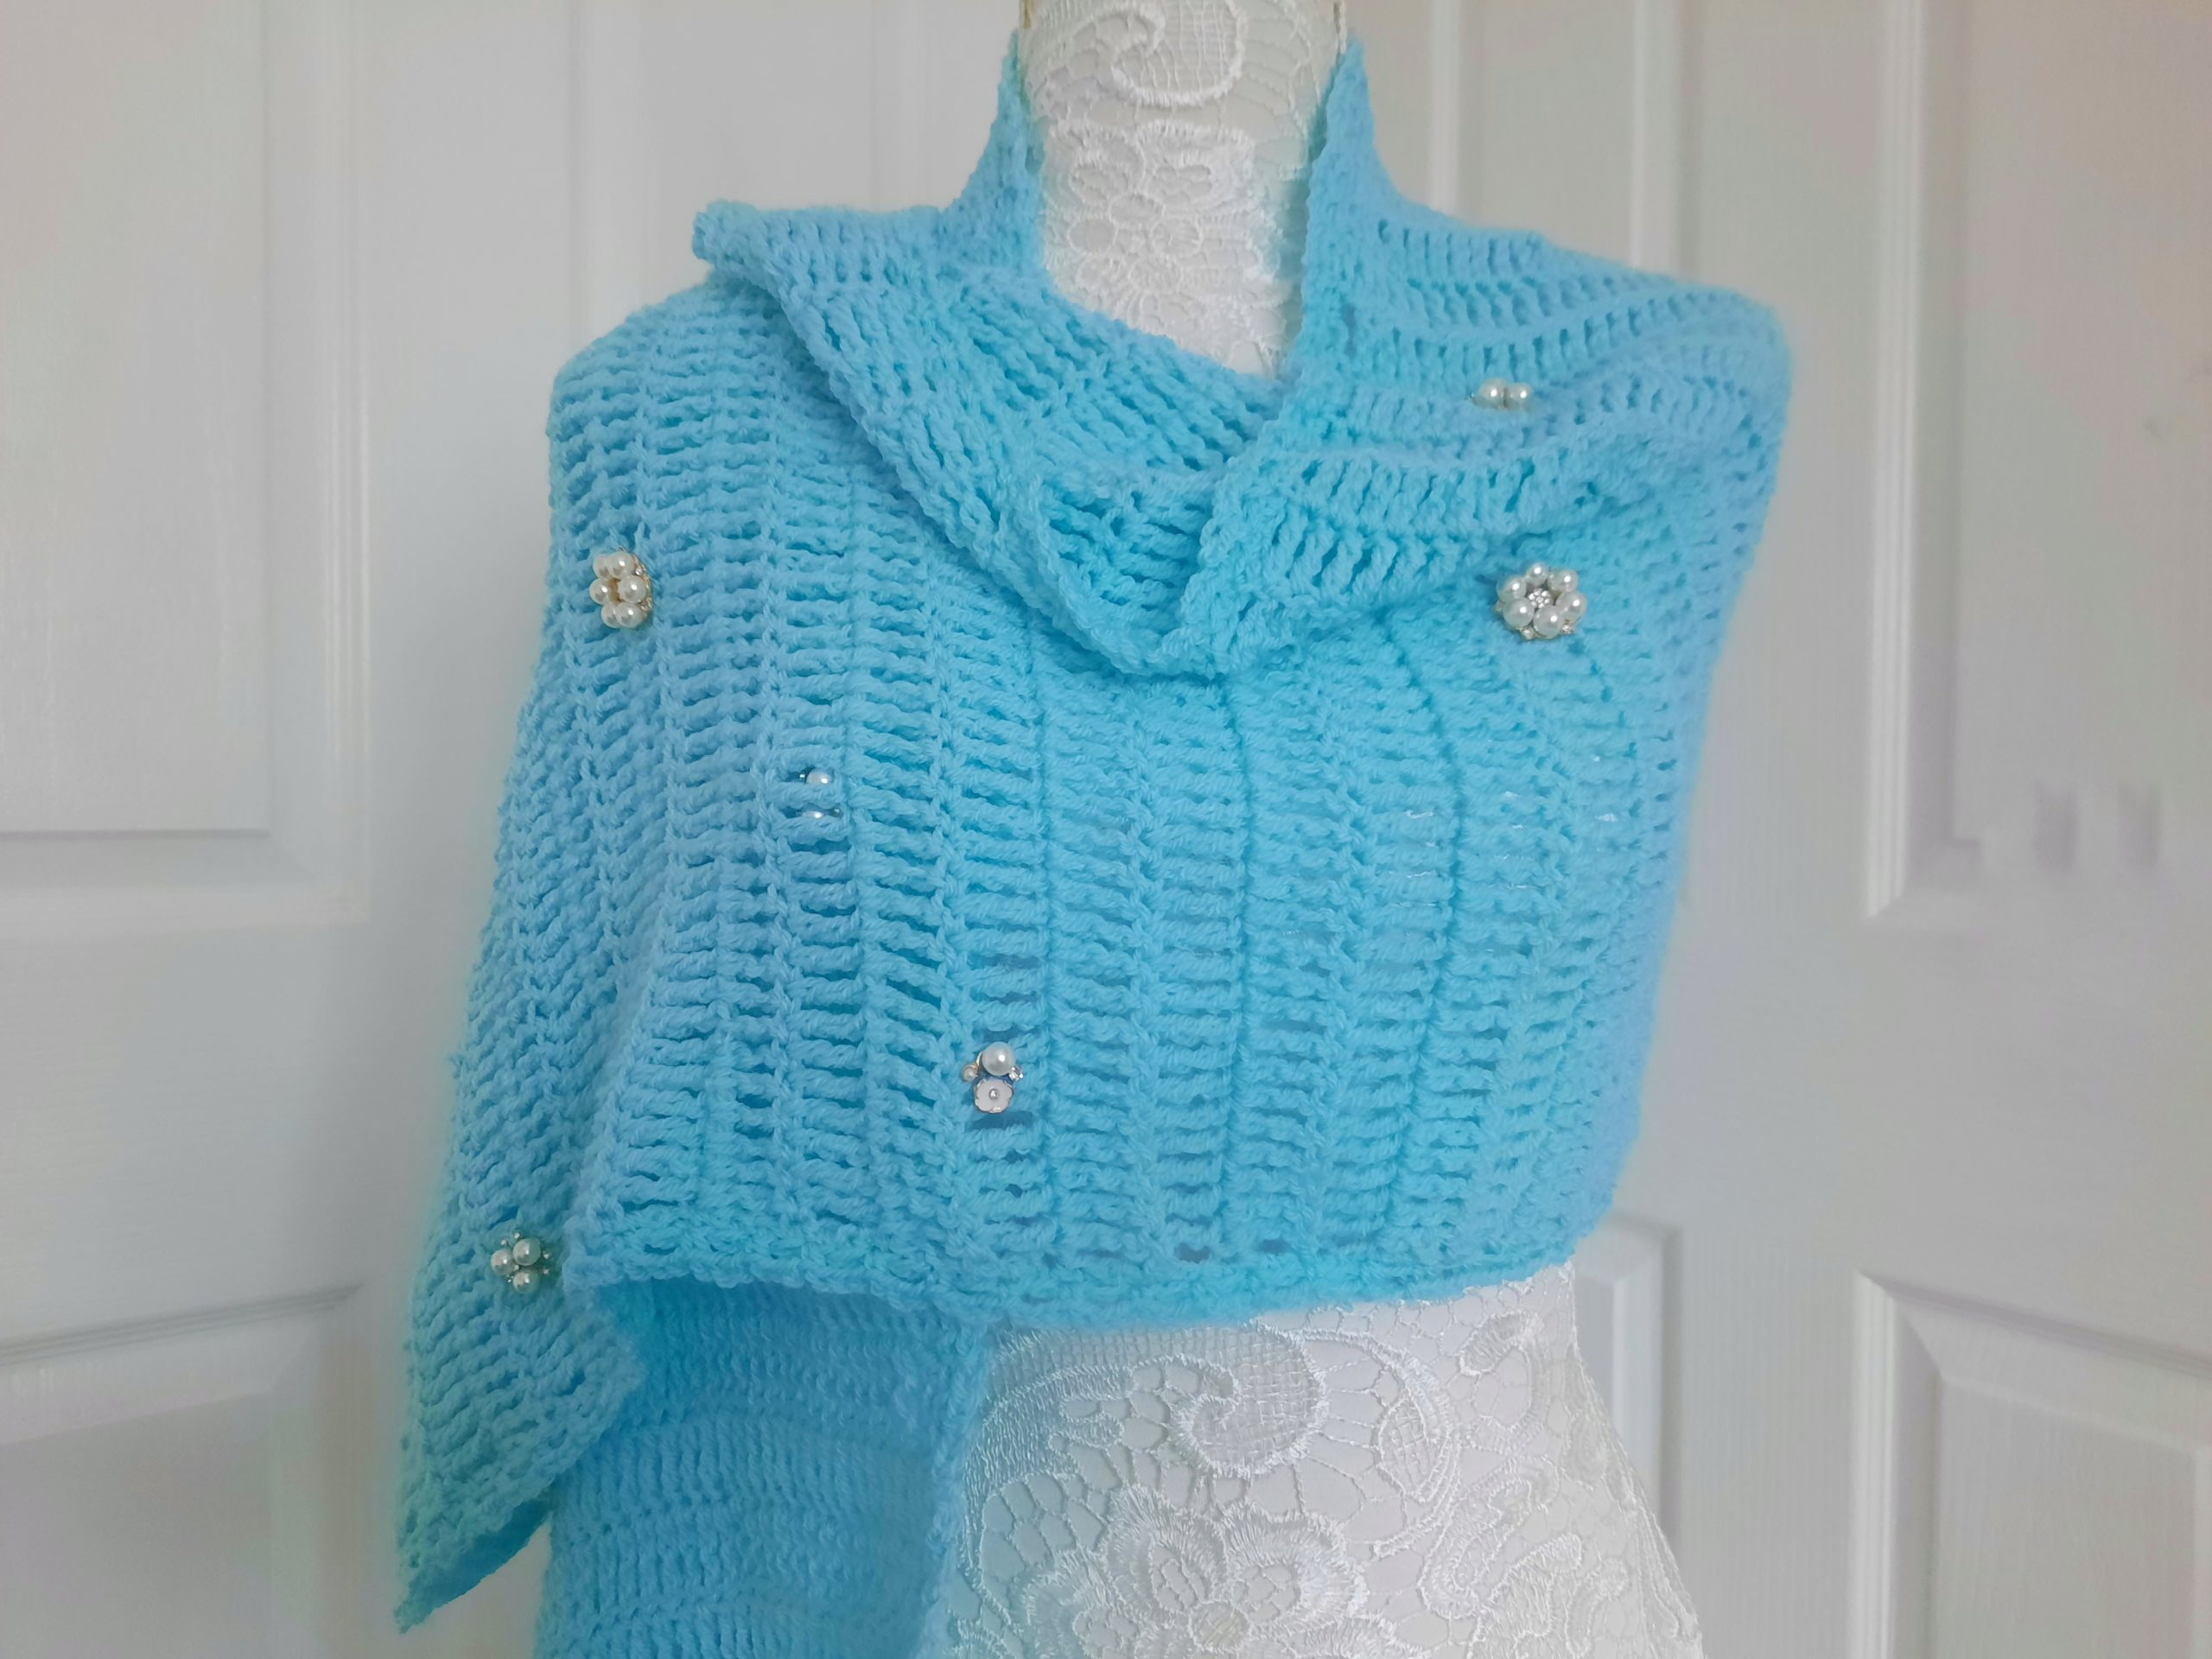 Crochet Bridgerton Inspired Regency Era Wrap